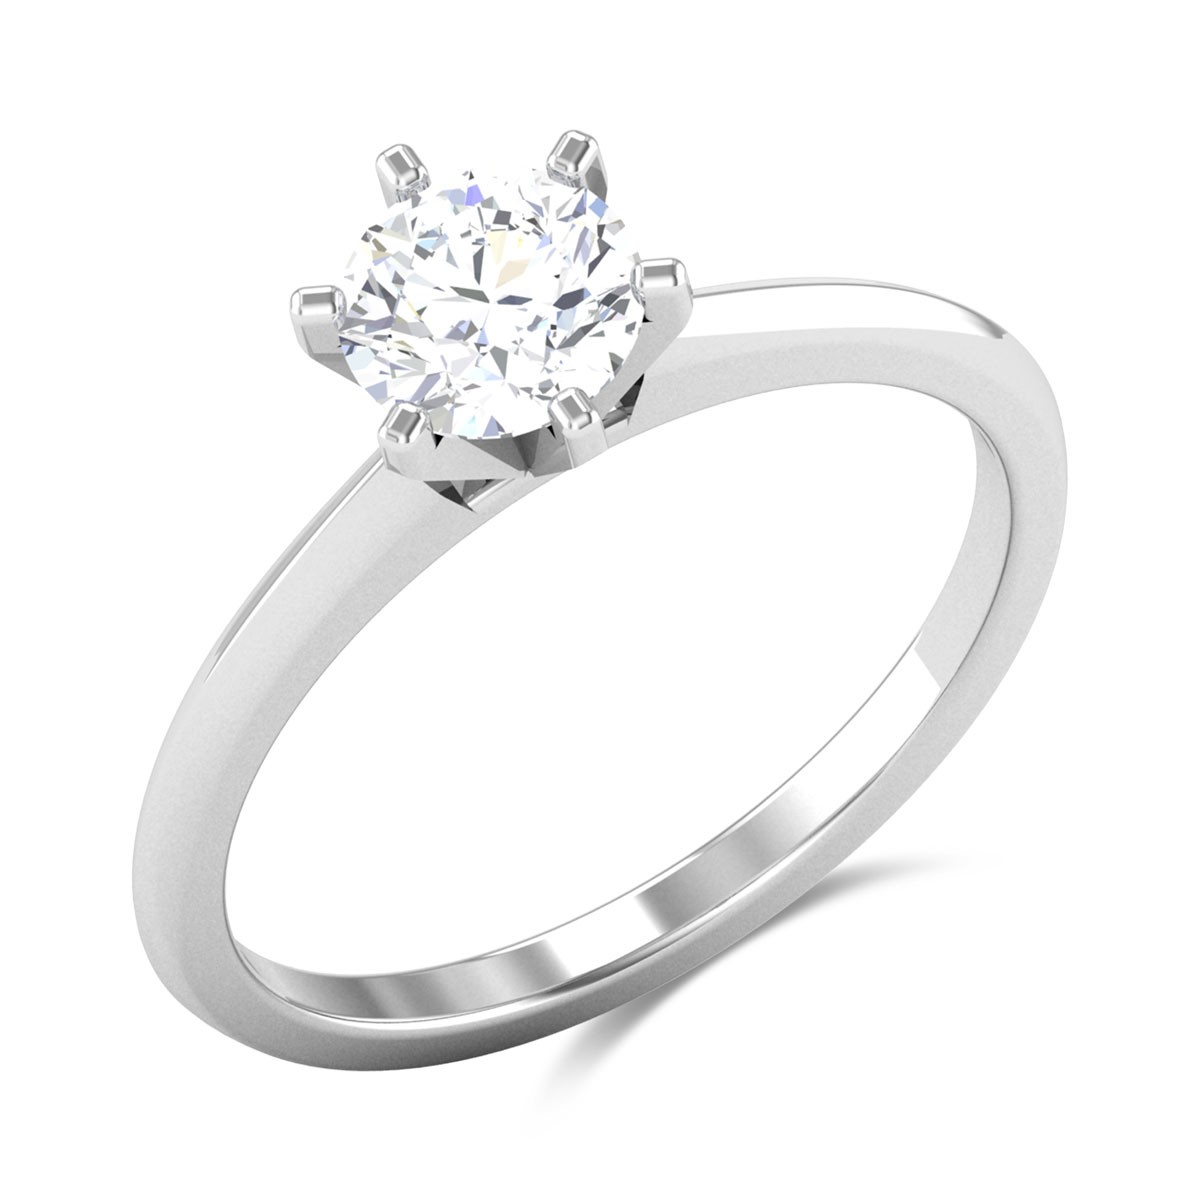 Berdine 6 Prong Solitaire Ring